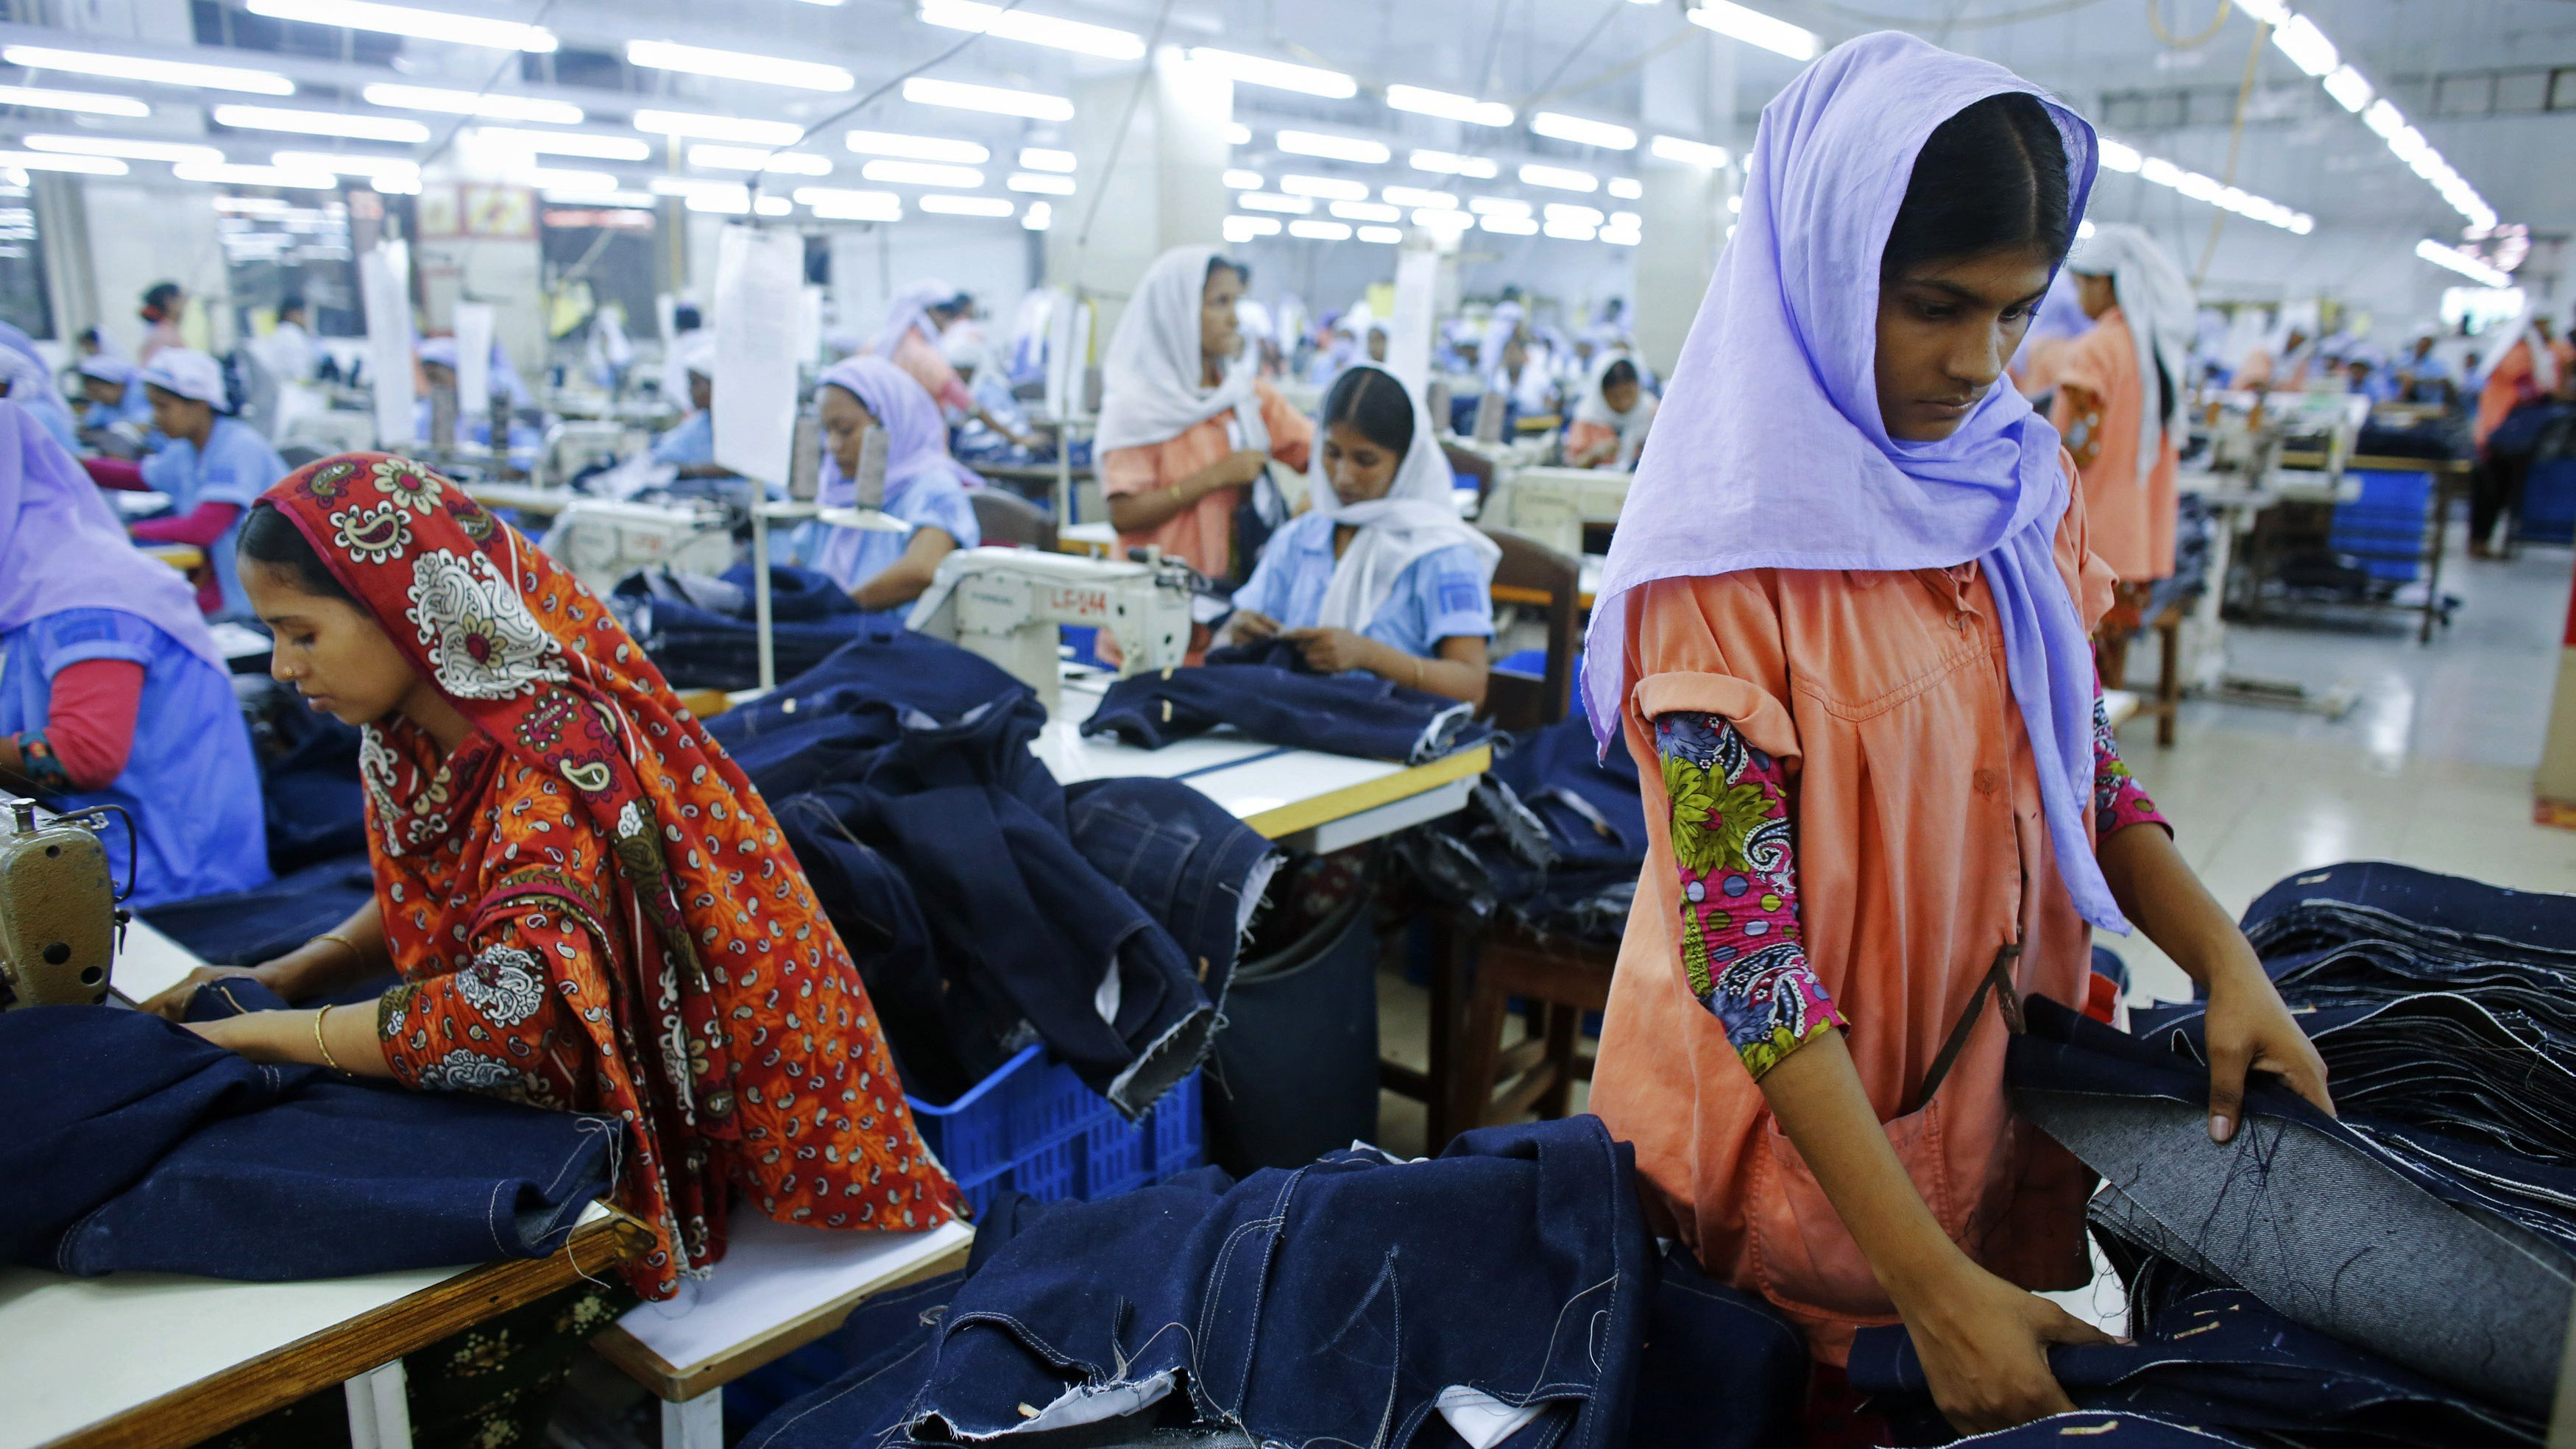 The Thing That Makes Bangladesh S Garment Industry Such A